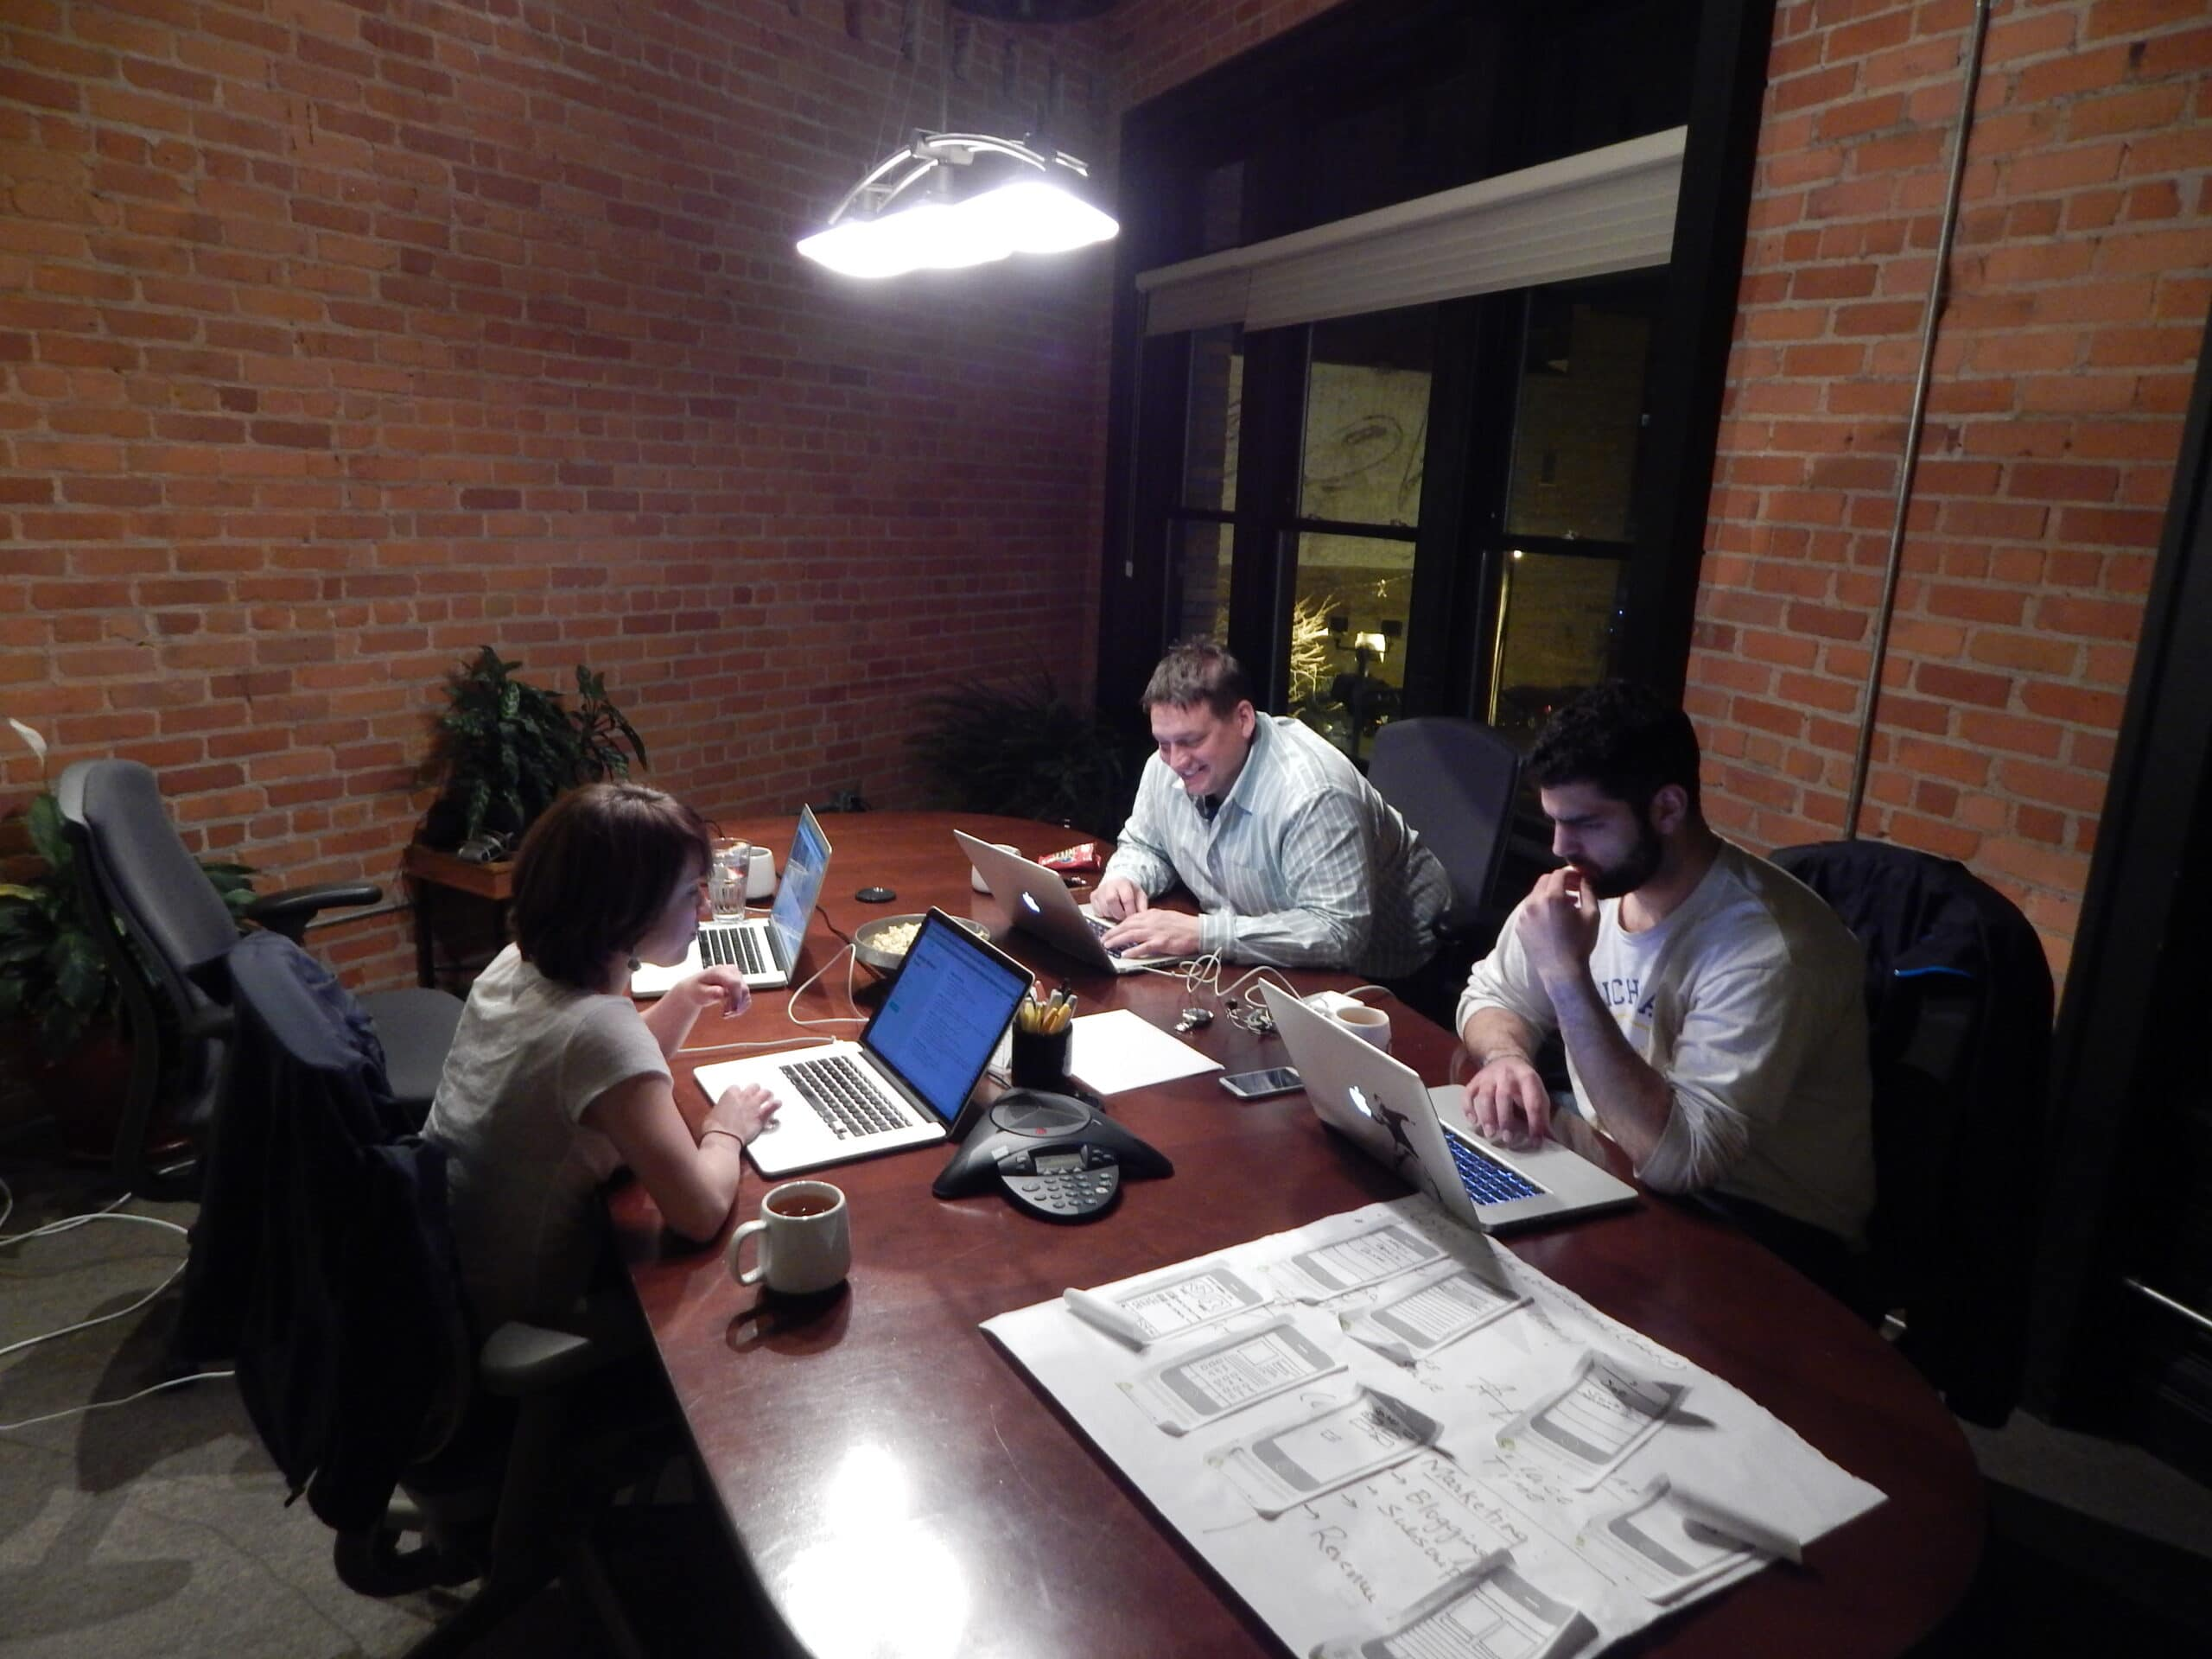 Team Working Late